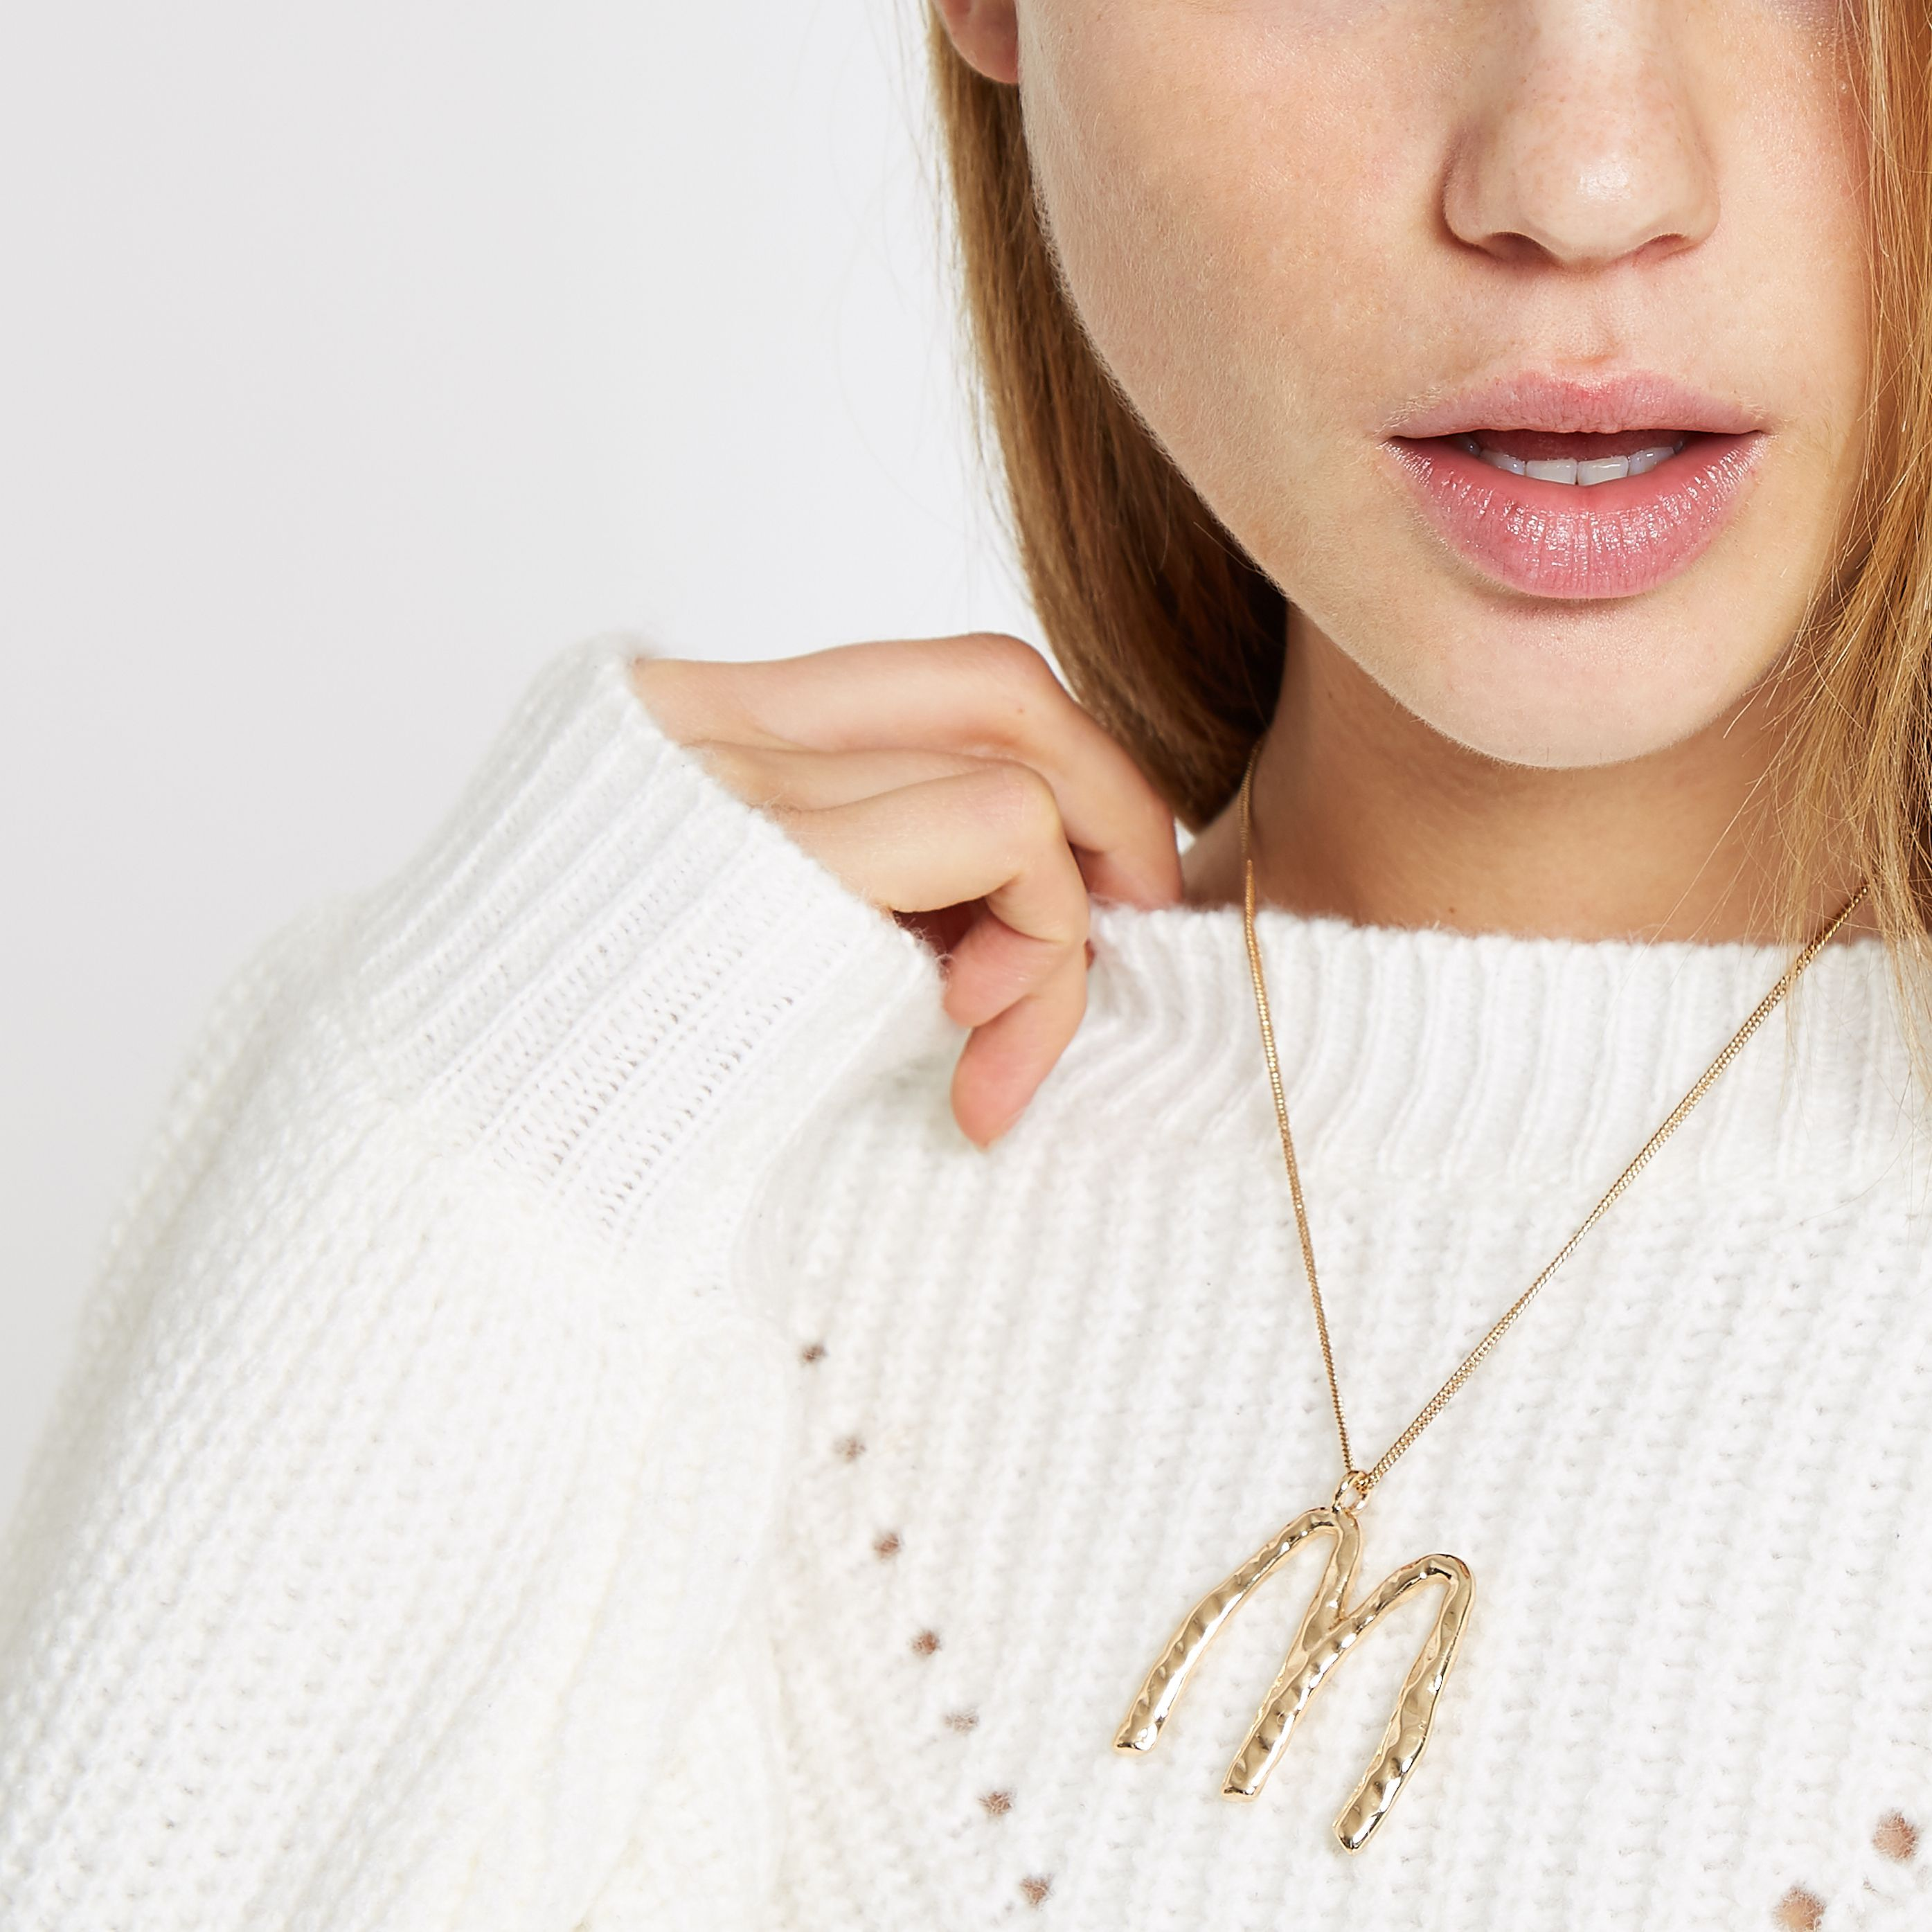 12b0fb671f0f3 Santa Please: River Island Does Celine-Style Necklace Dupes For €17 ...